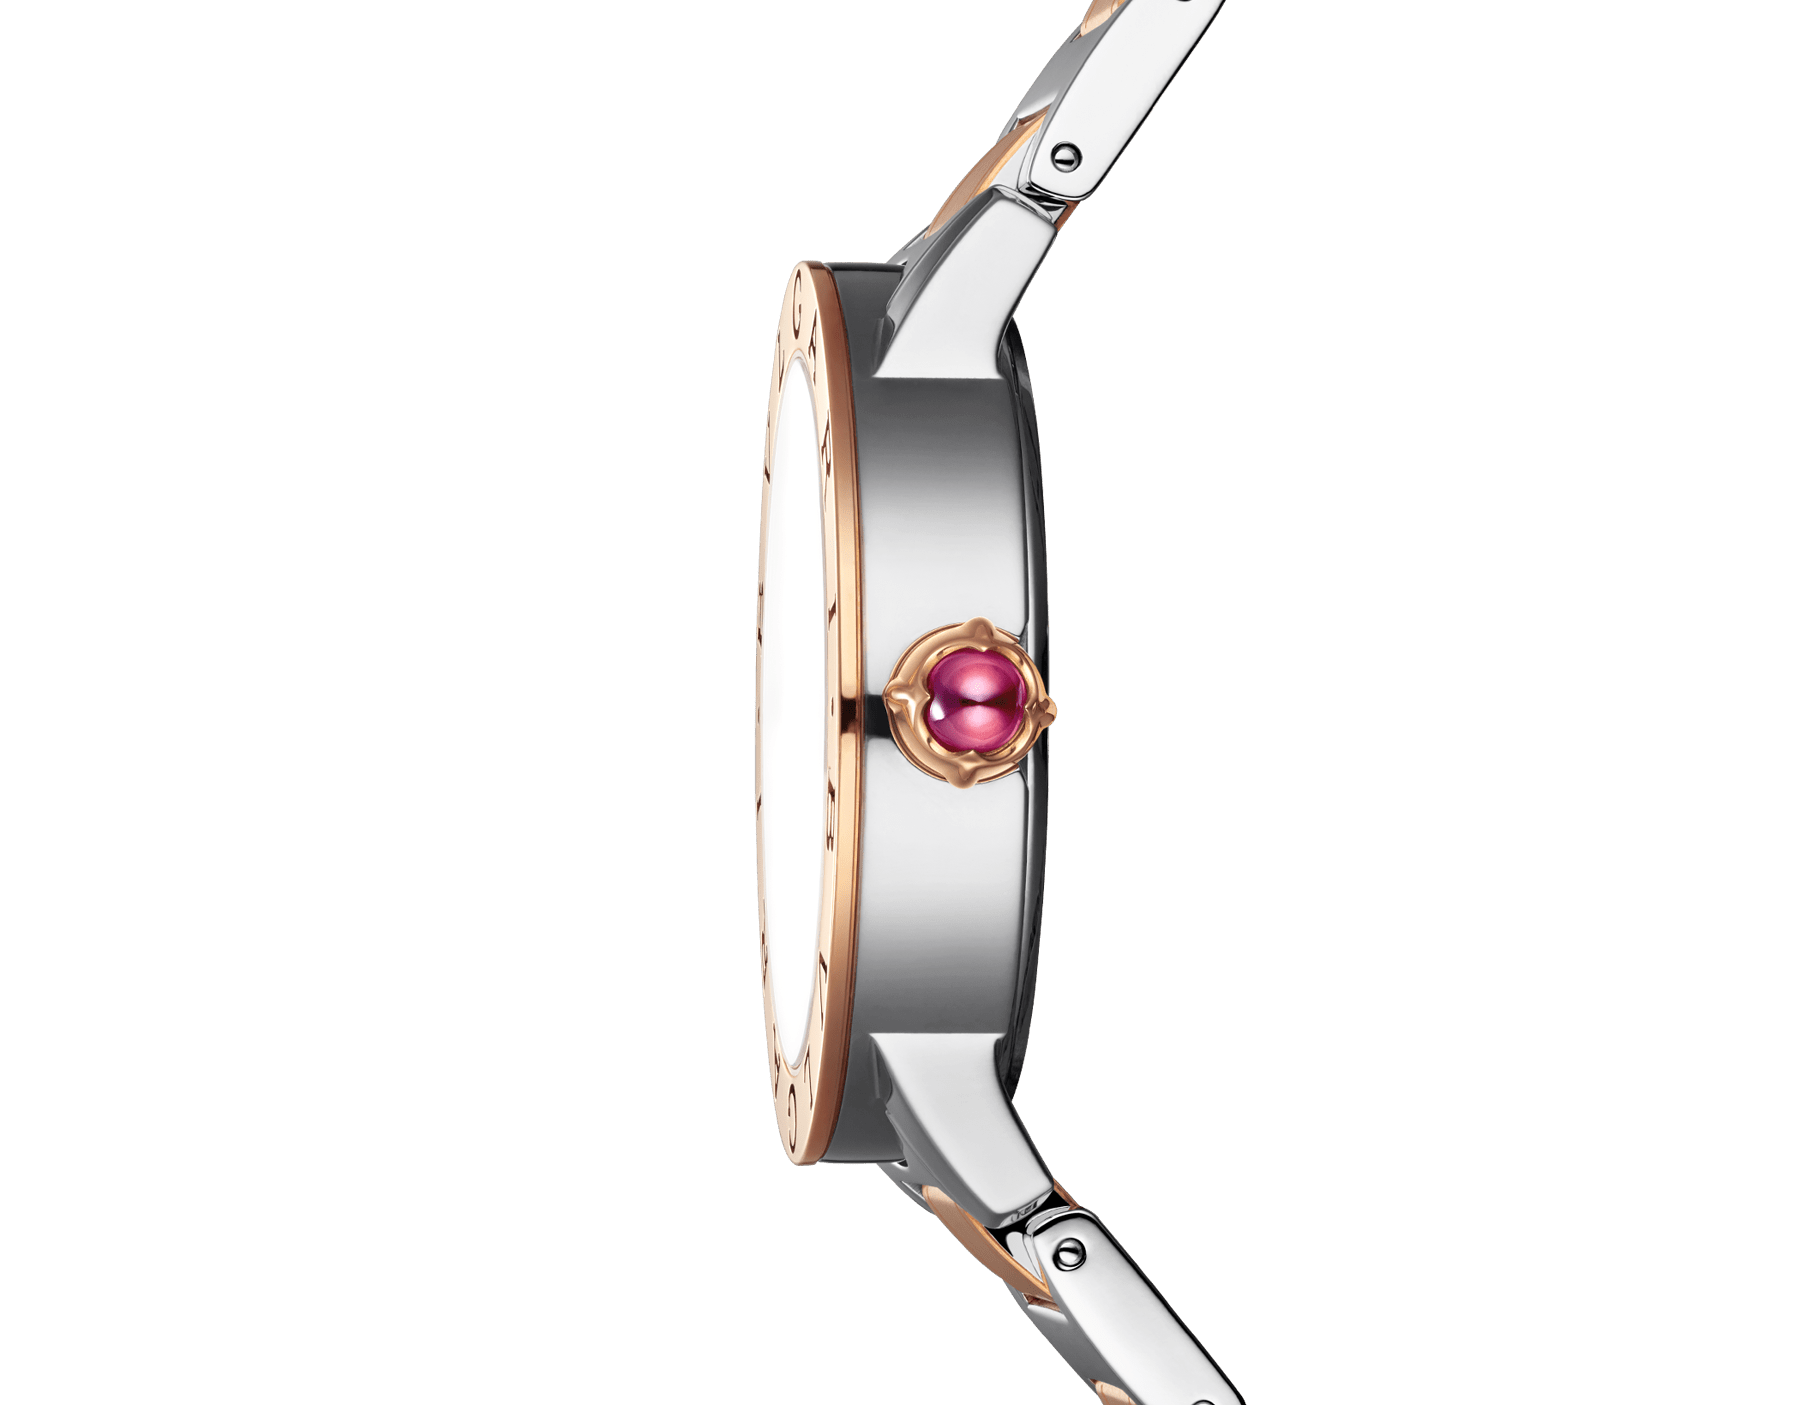 BVLGARI BVLGARI watch in stainless steel and 18 kt rose gold case and bracelet, with brown soleil lacquered dial and diamond indexes. Medium model 102157 image 3